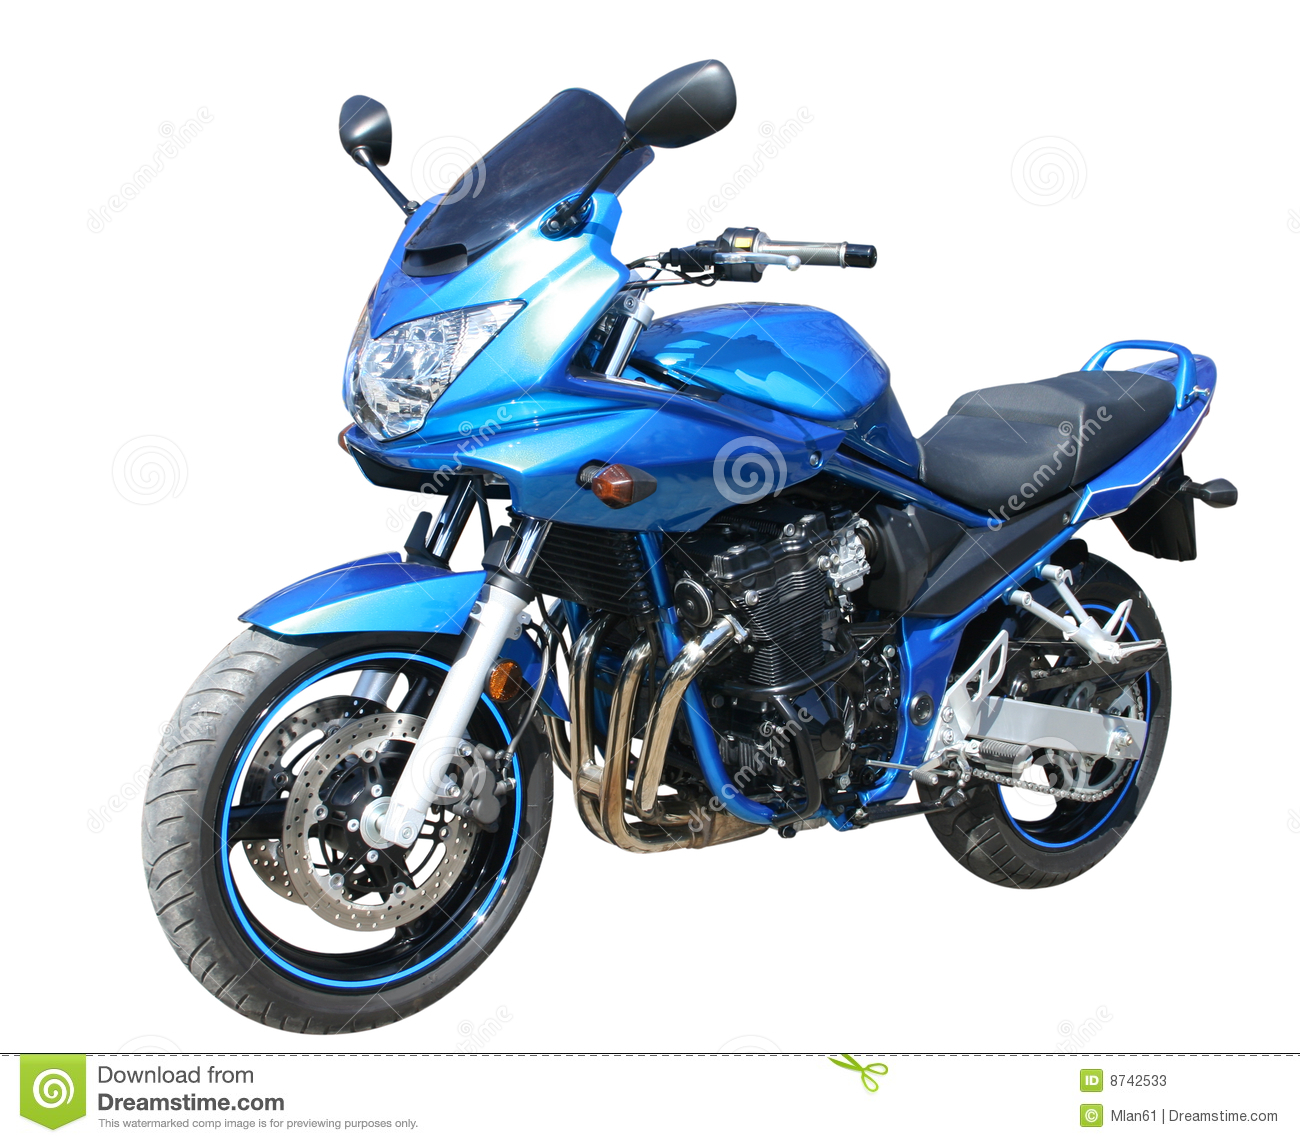 Blue Motorcycle Stock Photos - Image: 8742533